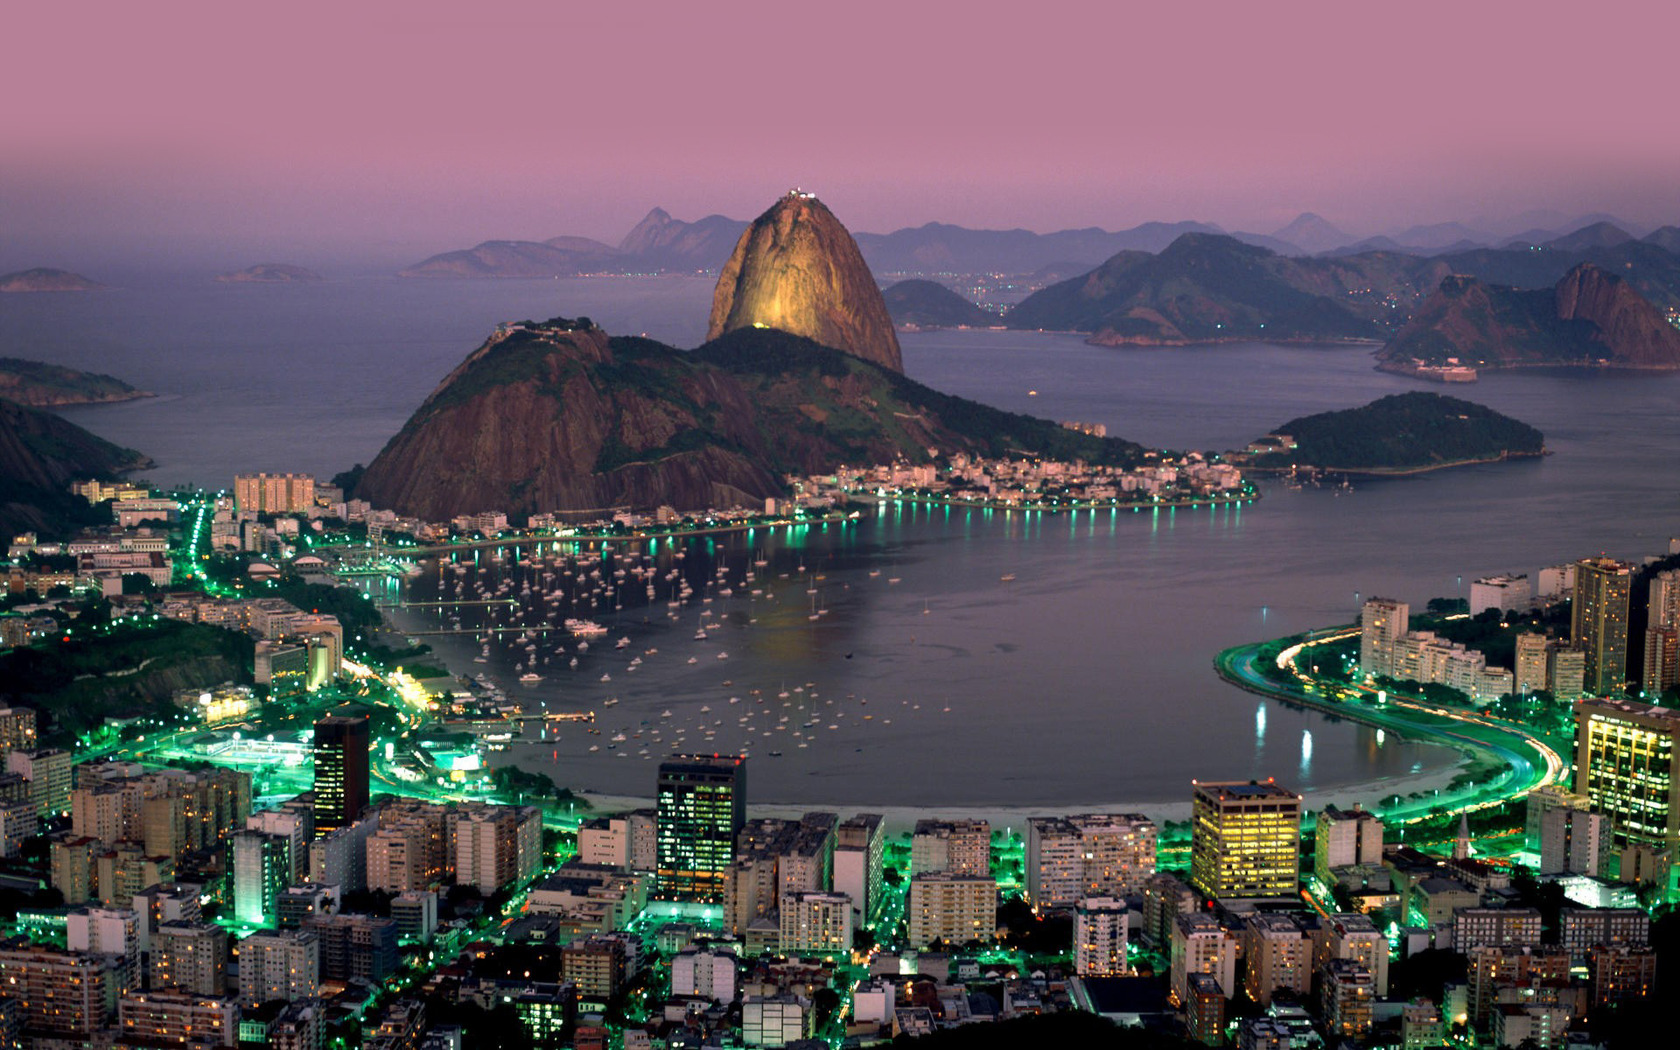 Free Download Rio De Janeiro Wallpaper 14330 1680x1050 For Your